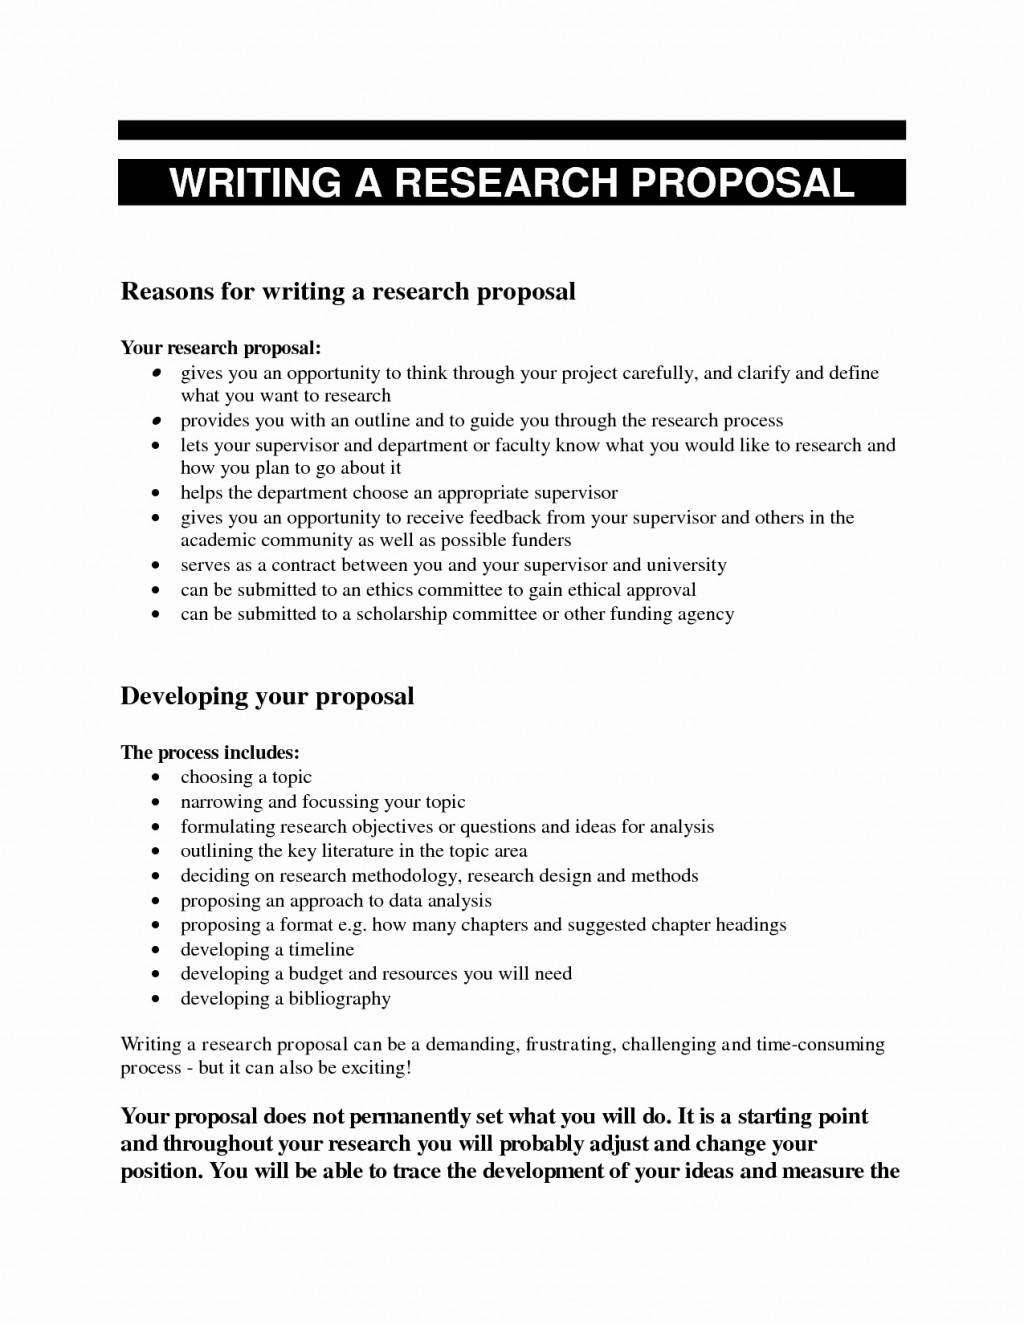 012 Proposal Research Topic Ideas Paper Sociology Topics Beautiful Propose Solution Essay Astounding History In Marketing Large